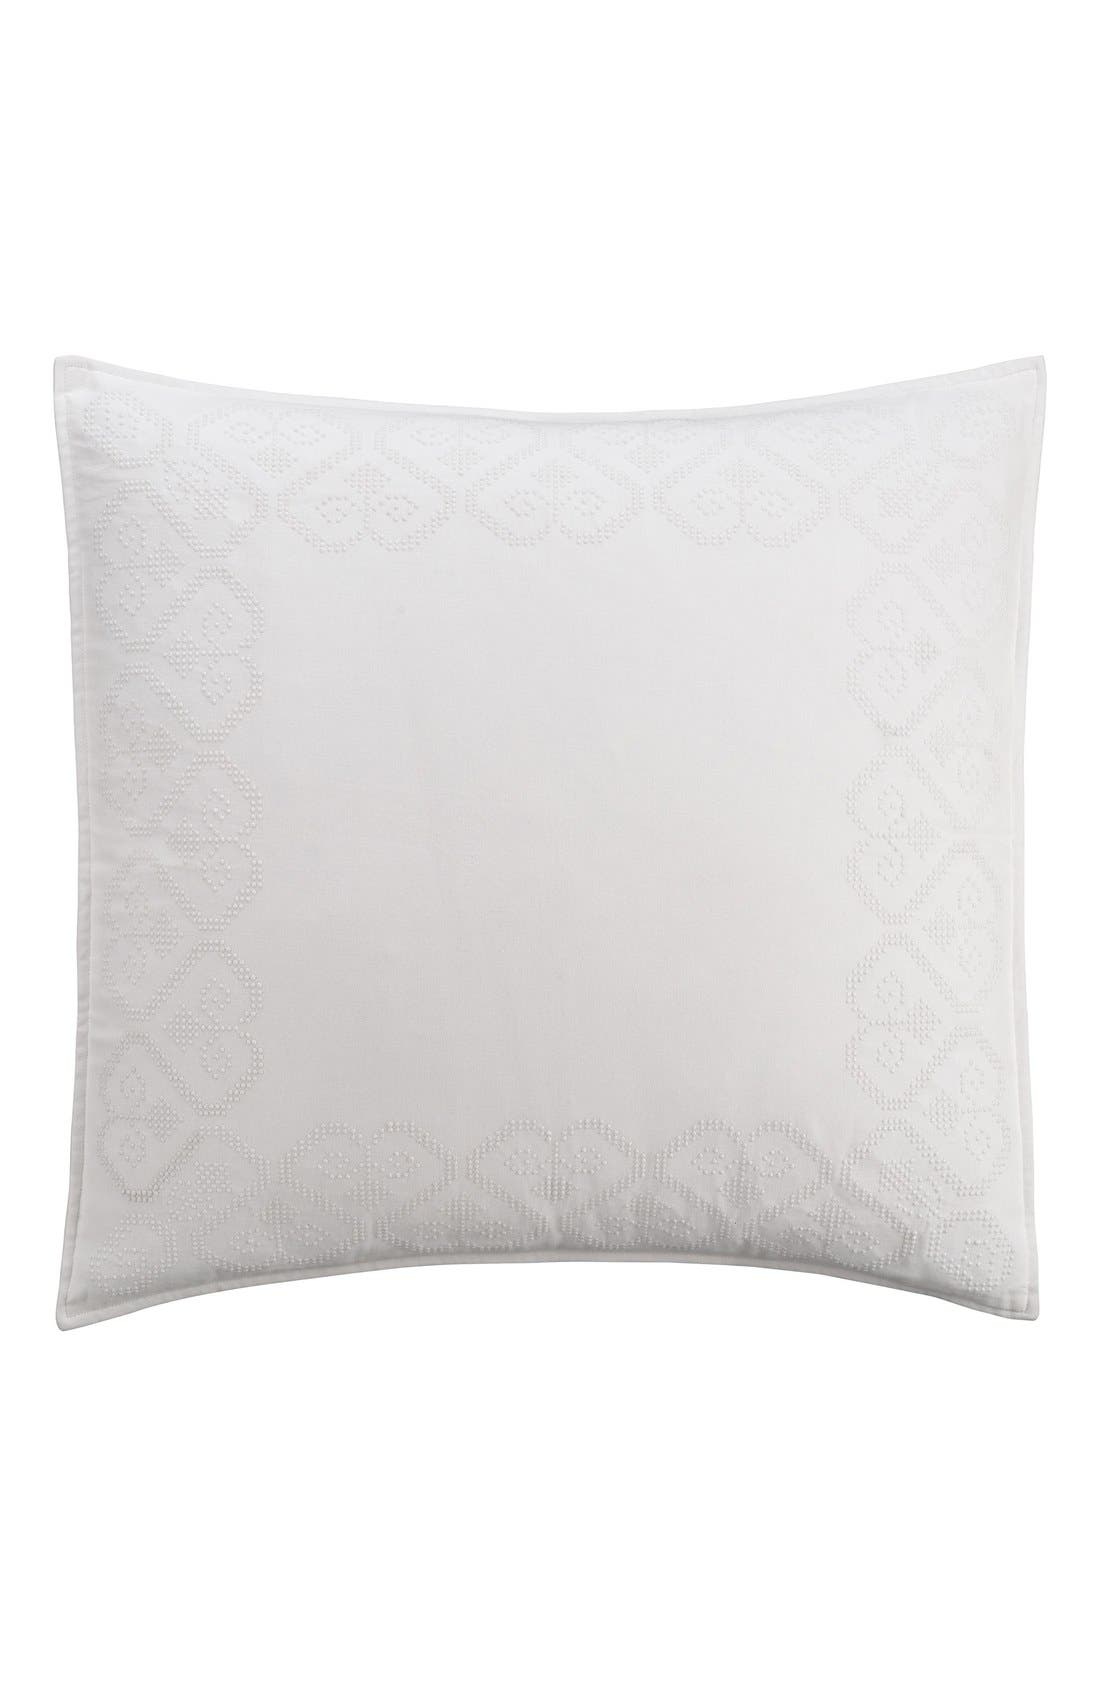 'Lace Medallion' Euro Sham,                         Main,                         color, White